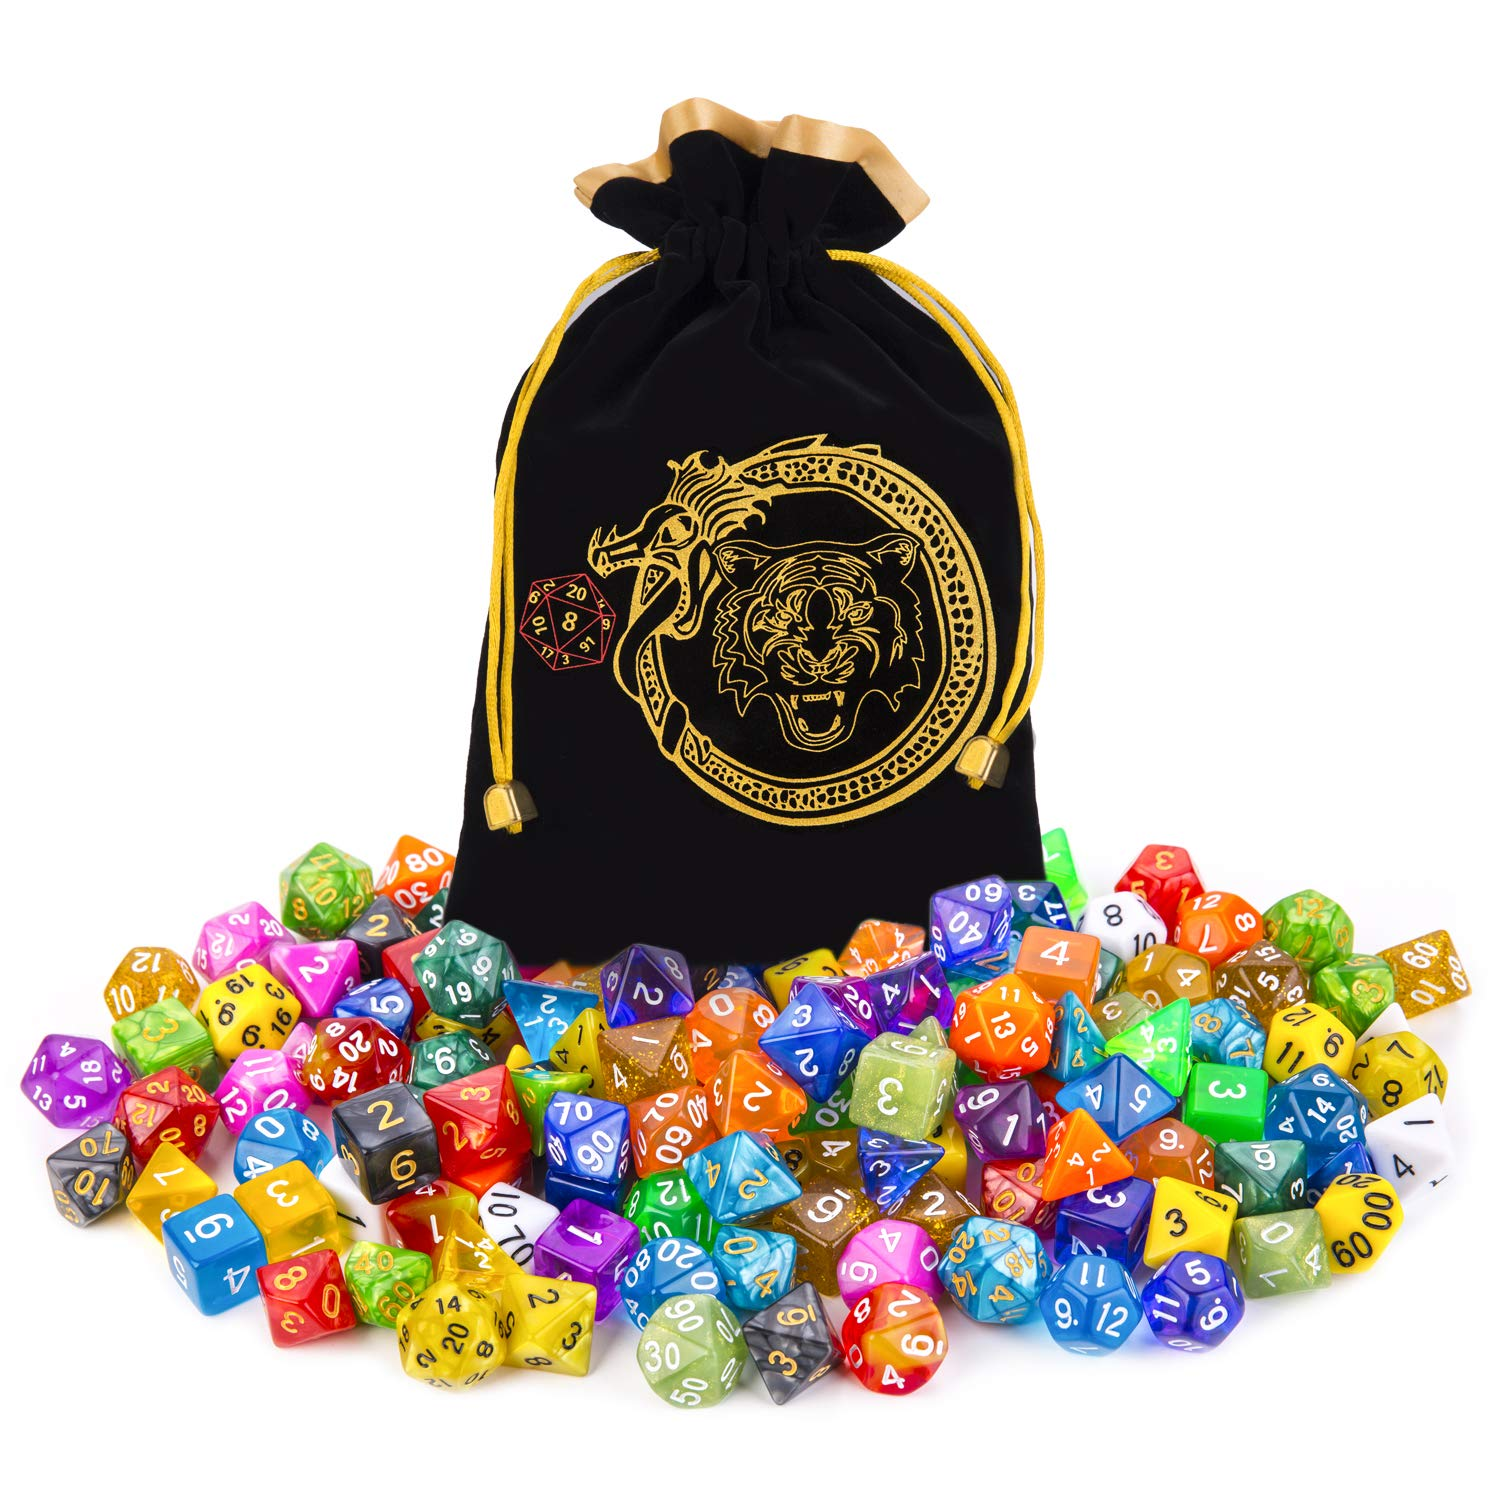 CiaraQ DND Dice Set, 140PCS Polyhedral Game Dice, 20 Set Double Color DND Role Playing Dice with 1 Big Pouch for Dungeon and Dragons DND RPG MTG Table Games Dice D4 D8 D10 D12 D20 ...